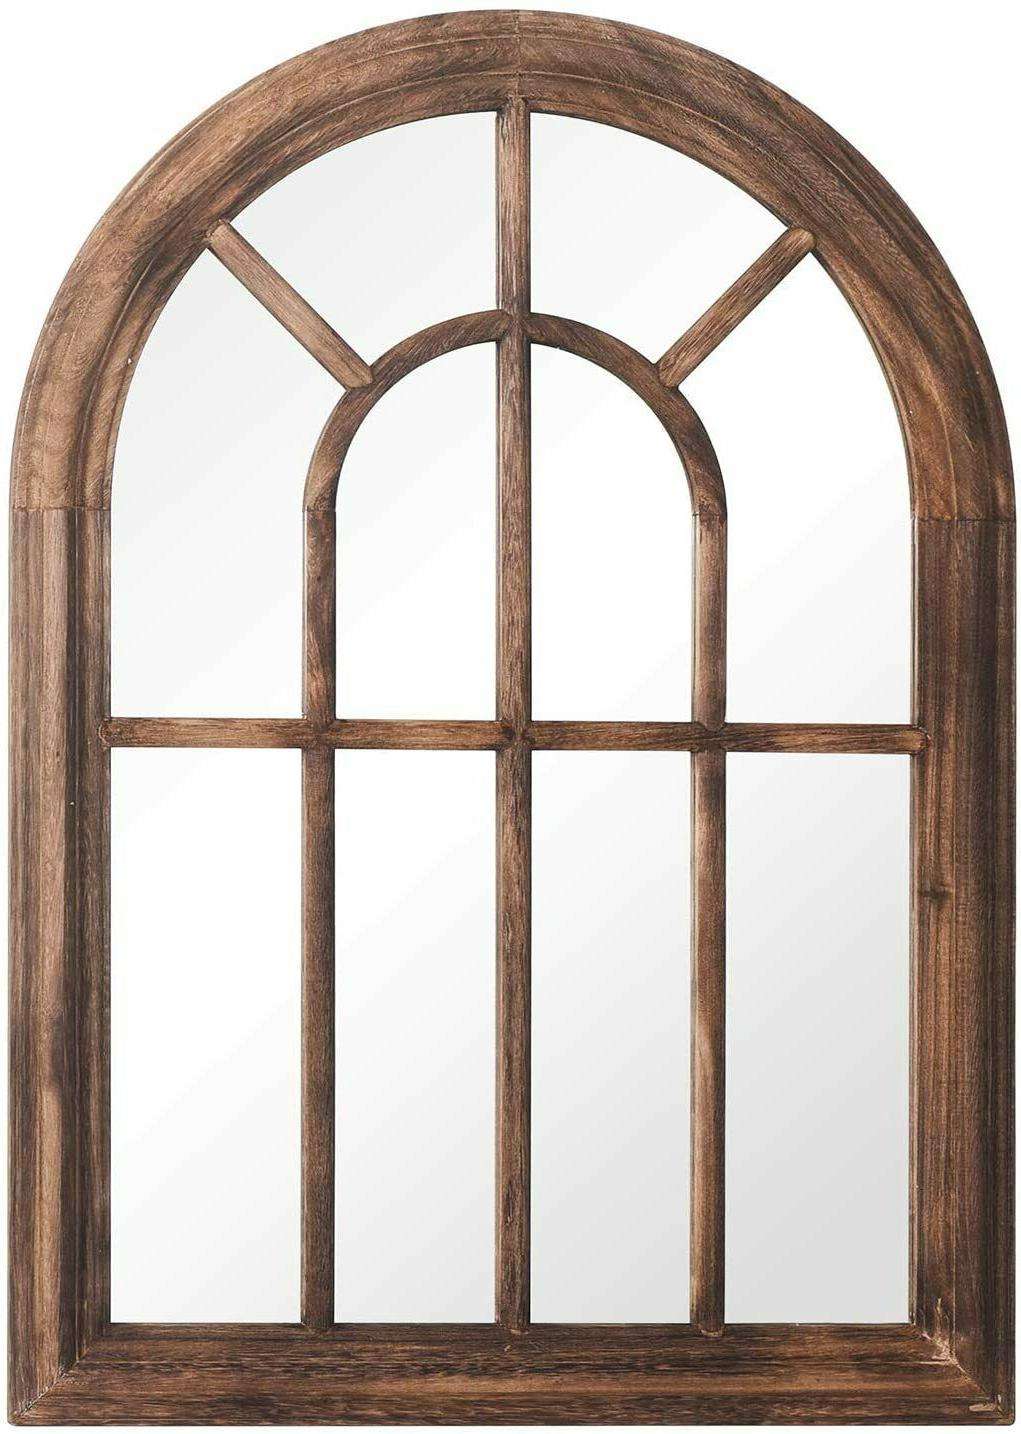 Brown Torched Mirror Frame Arched Wall Decor